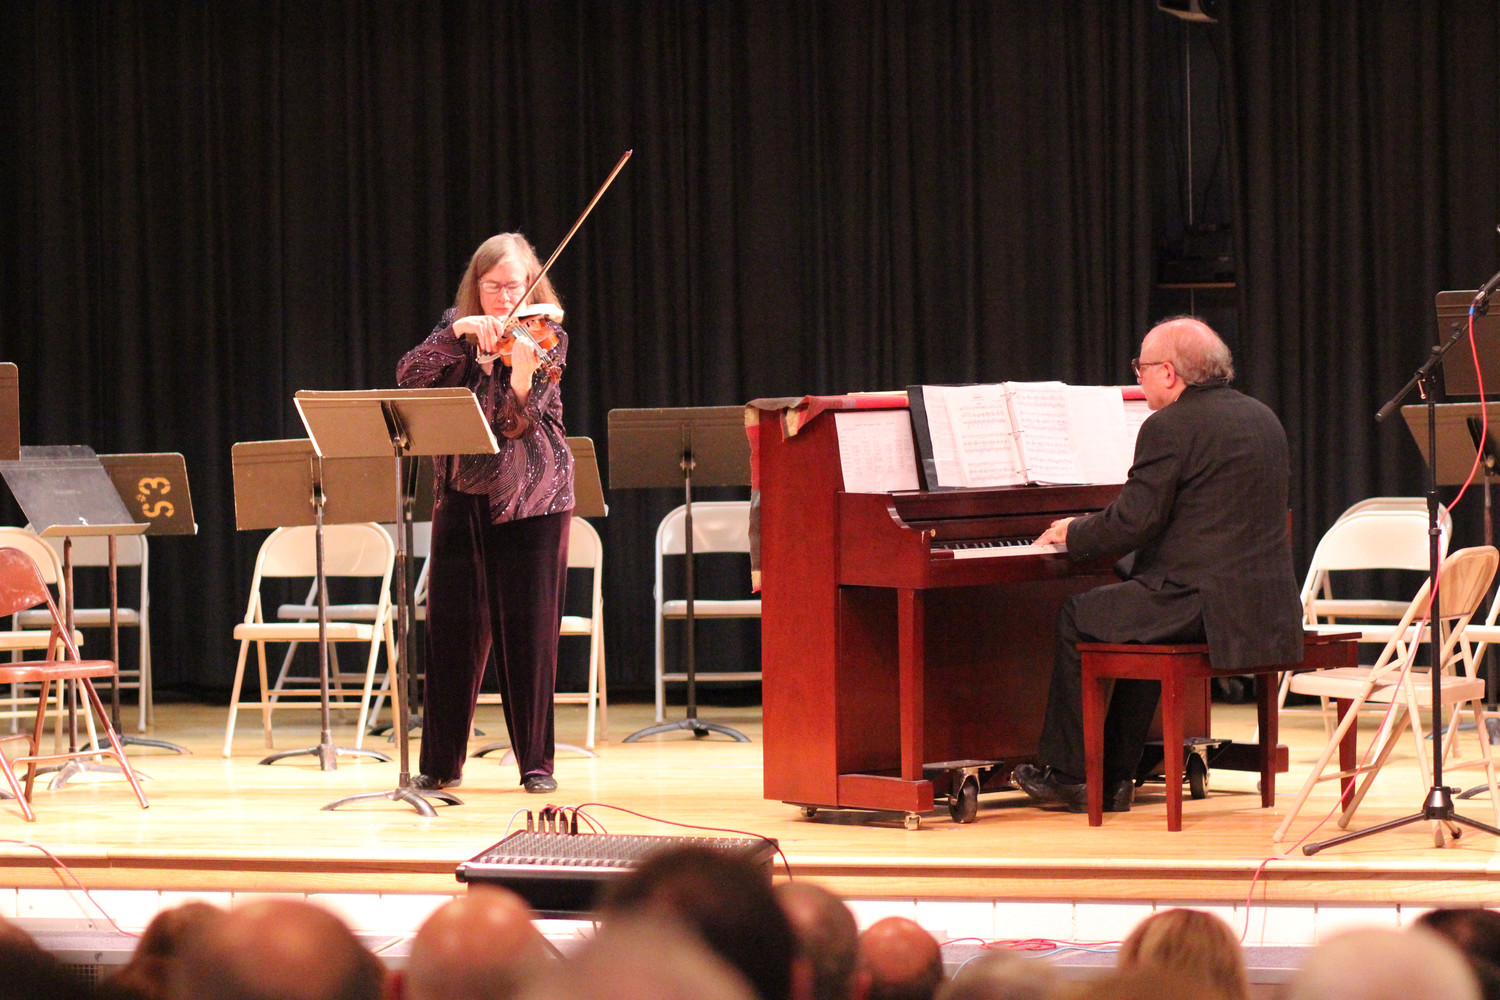 Anne Yarrow commissioned and recorded all 12 of Rothgarber's pieces for violin and piano and performed a few of them at the concert honoring the composer. Leonard Lehrman accompanied Yarrow on piano.